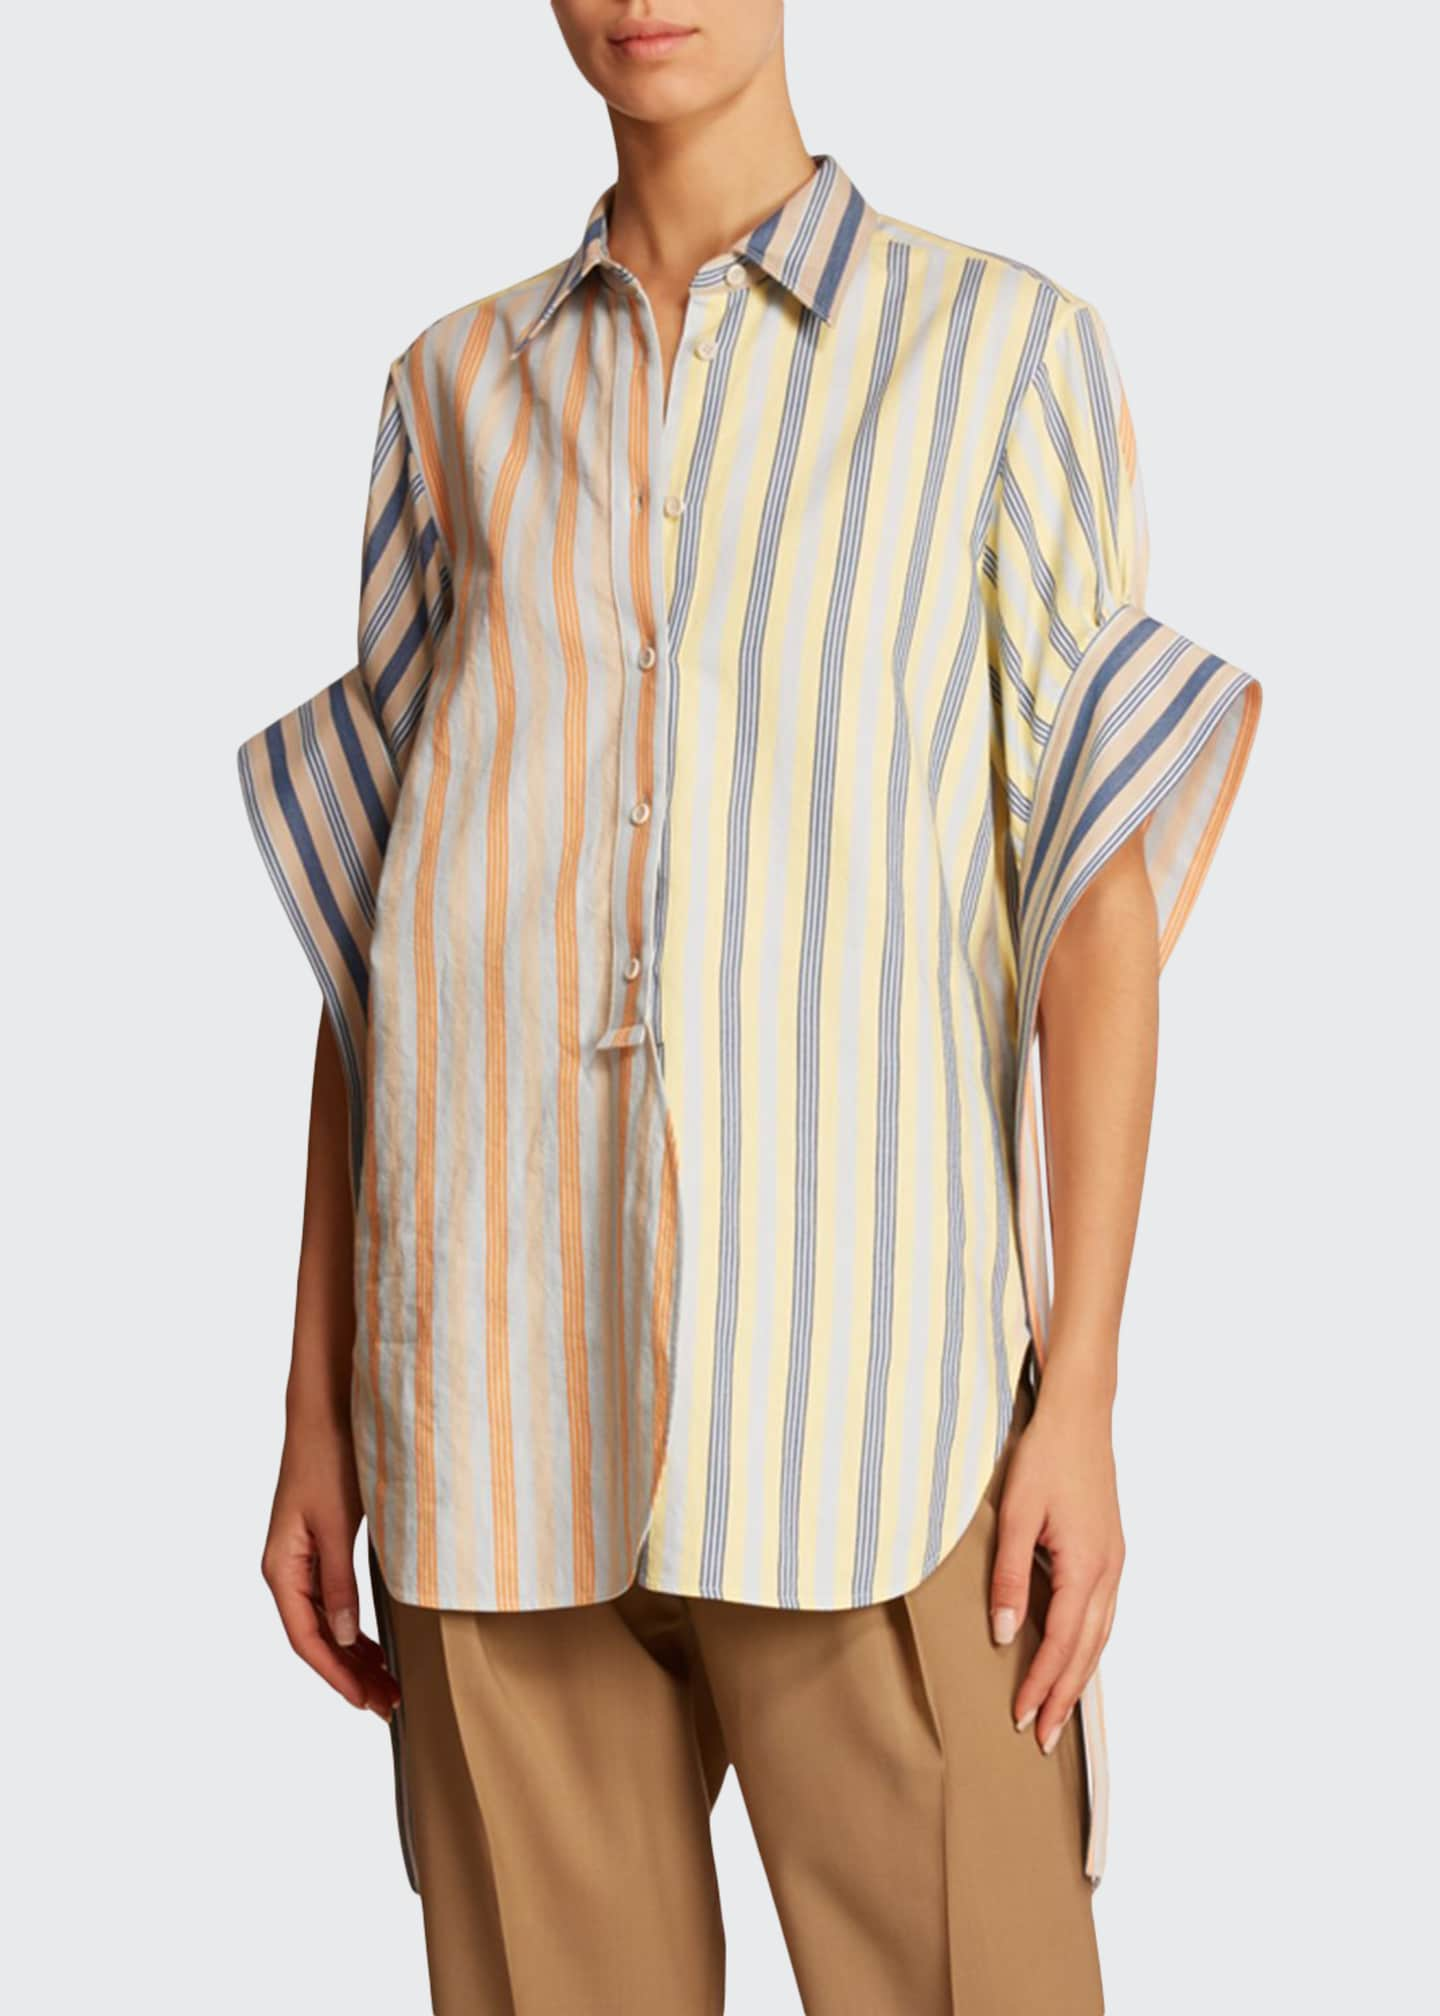 JW Anderson Exaggerated-Sleeve Striped Cotton Shirt